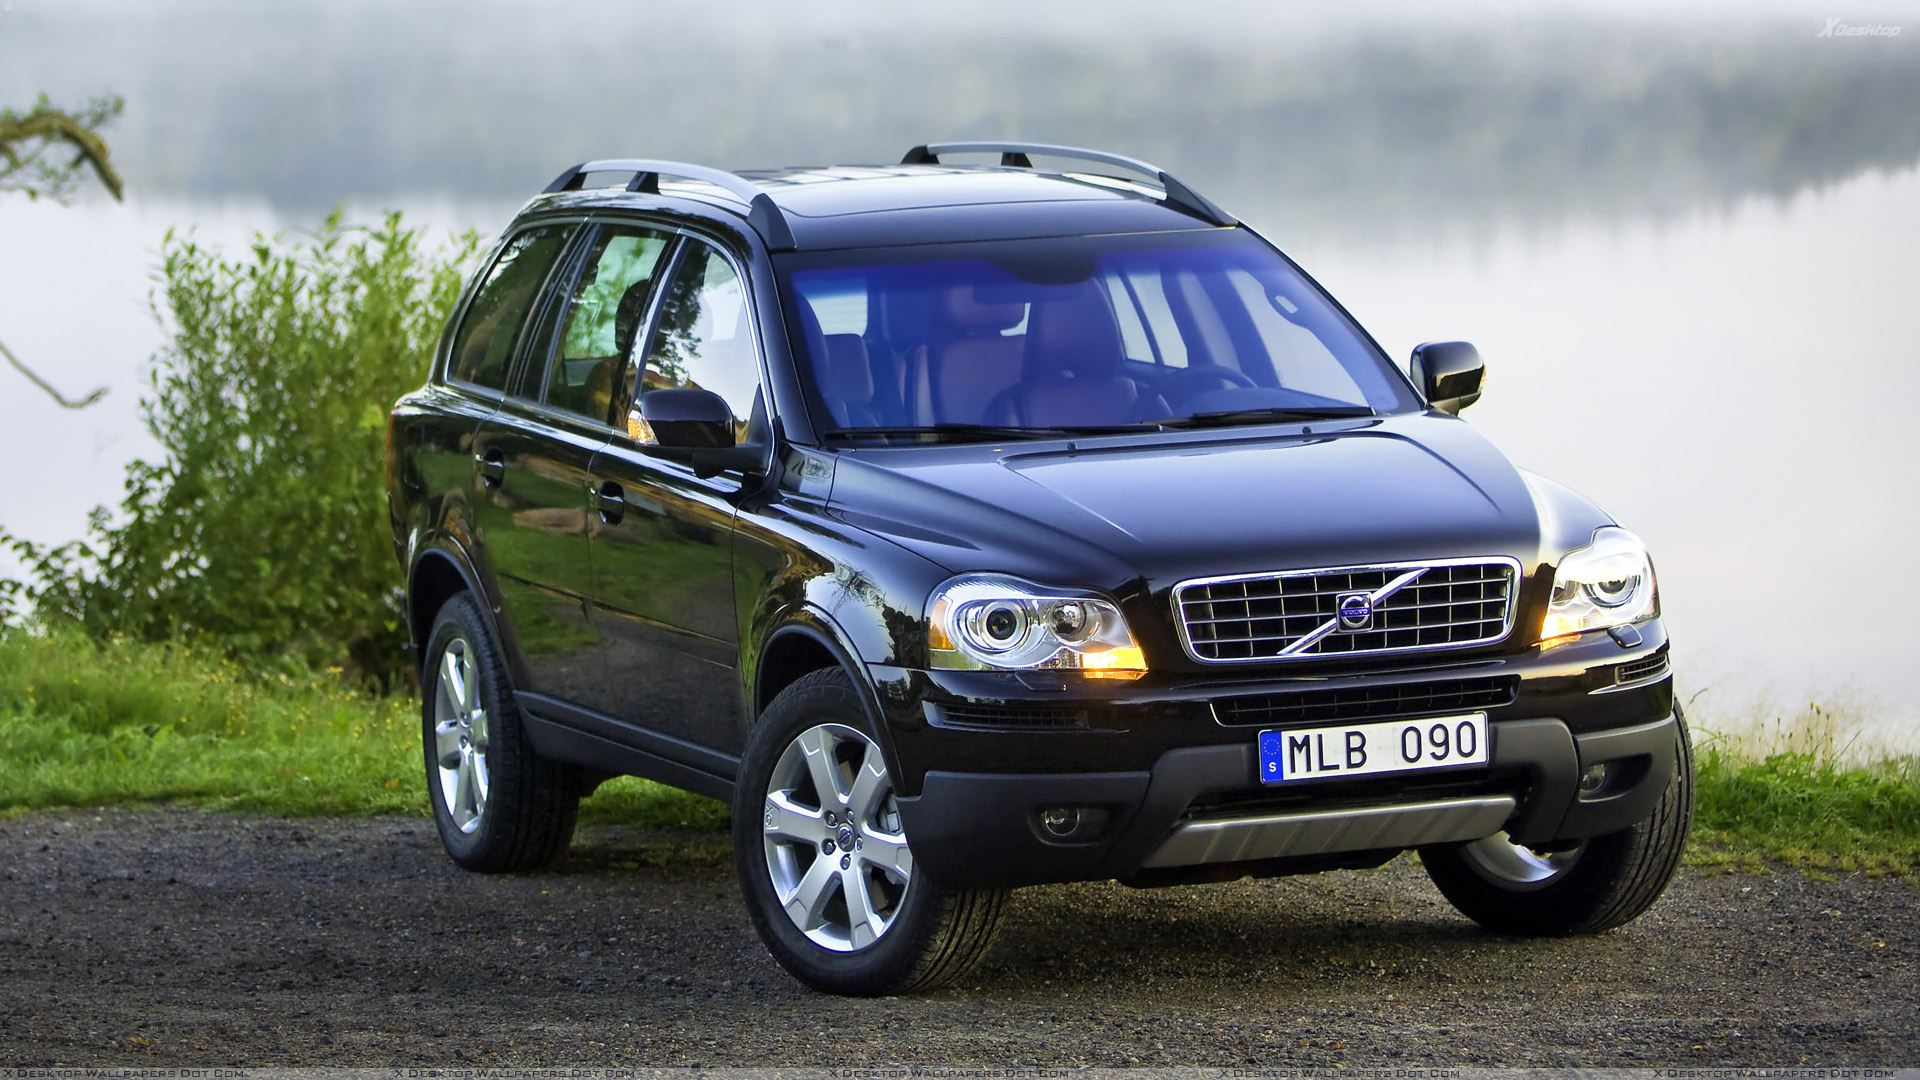 rover audi discovery volvo top leader land gear vs group